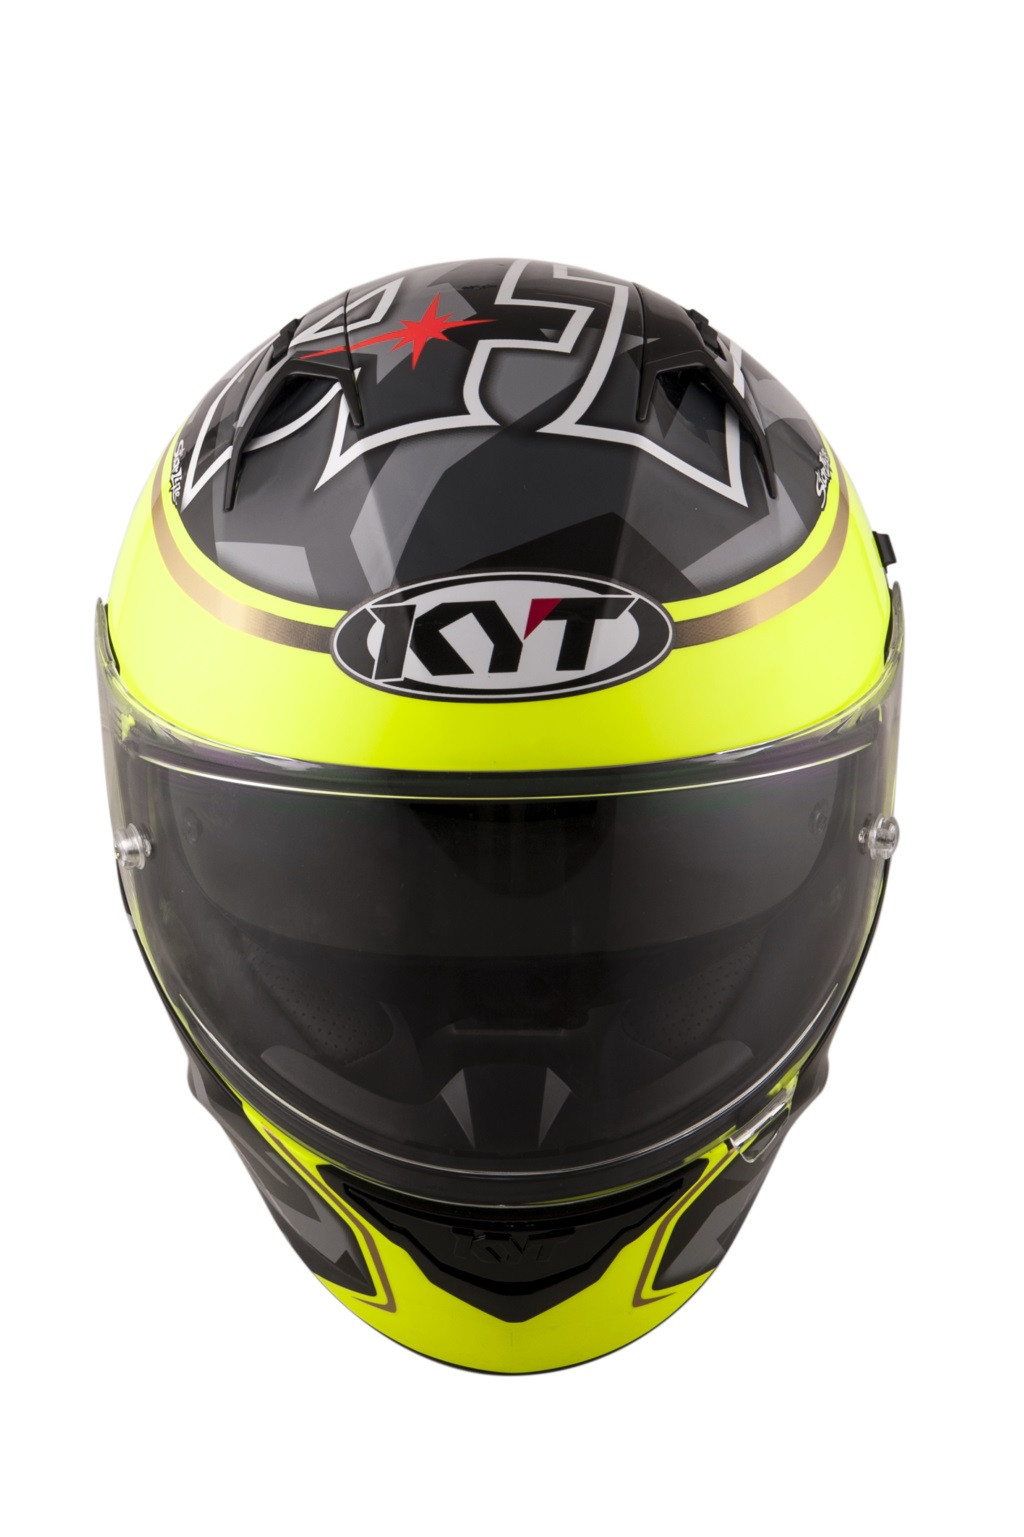 Kyt Full Face Helmet NF R Replica Espargaro Grey